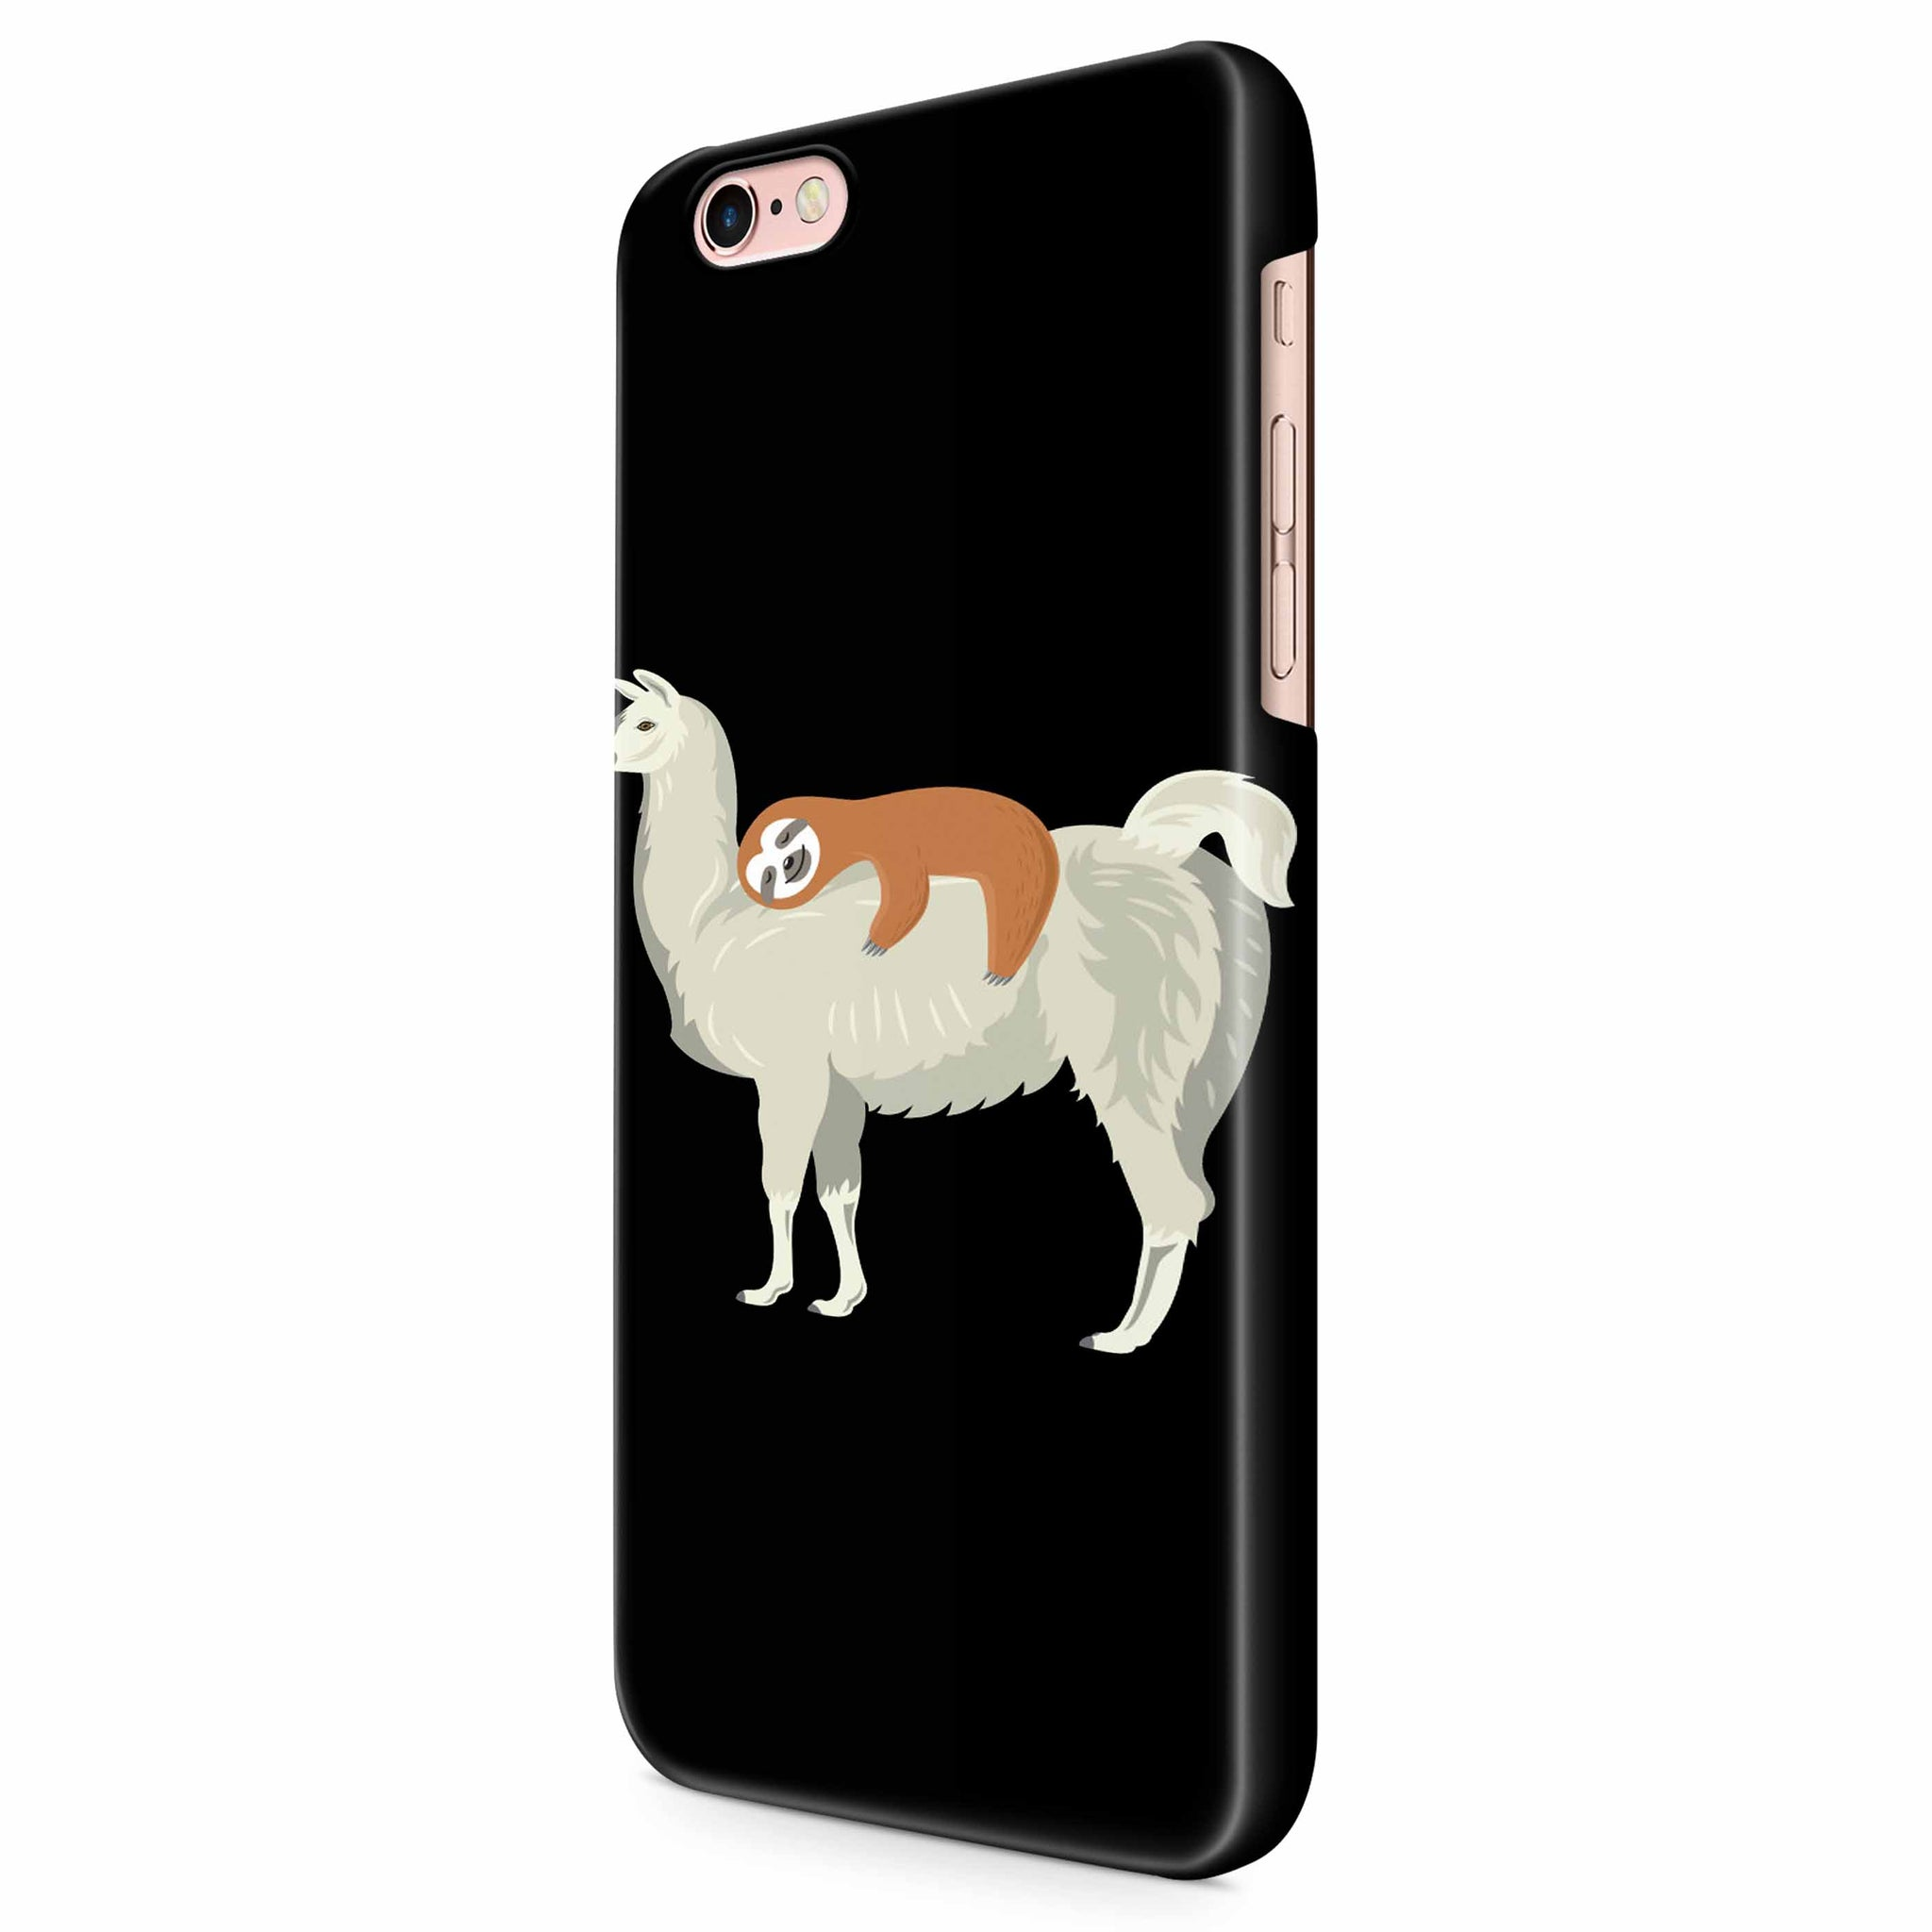 Funny Sloth Sleeping On Llama iPhone 6/6S/6S Plus | 7/7S/7S Plus | 8/8S/8S Plus| X/XS/XR/XS Max 3D Case